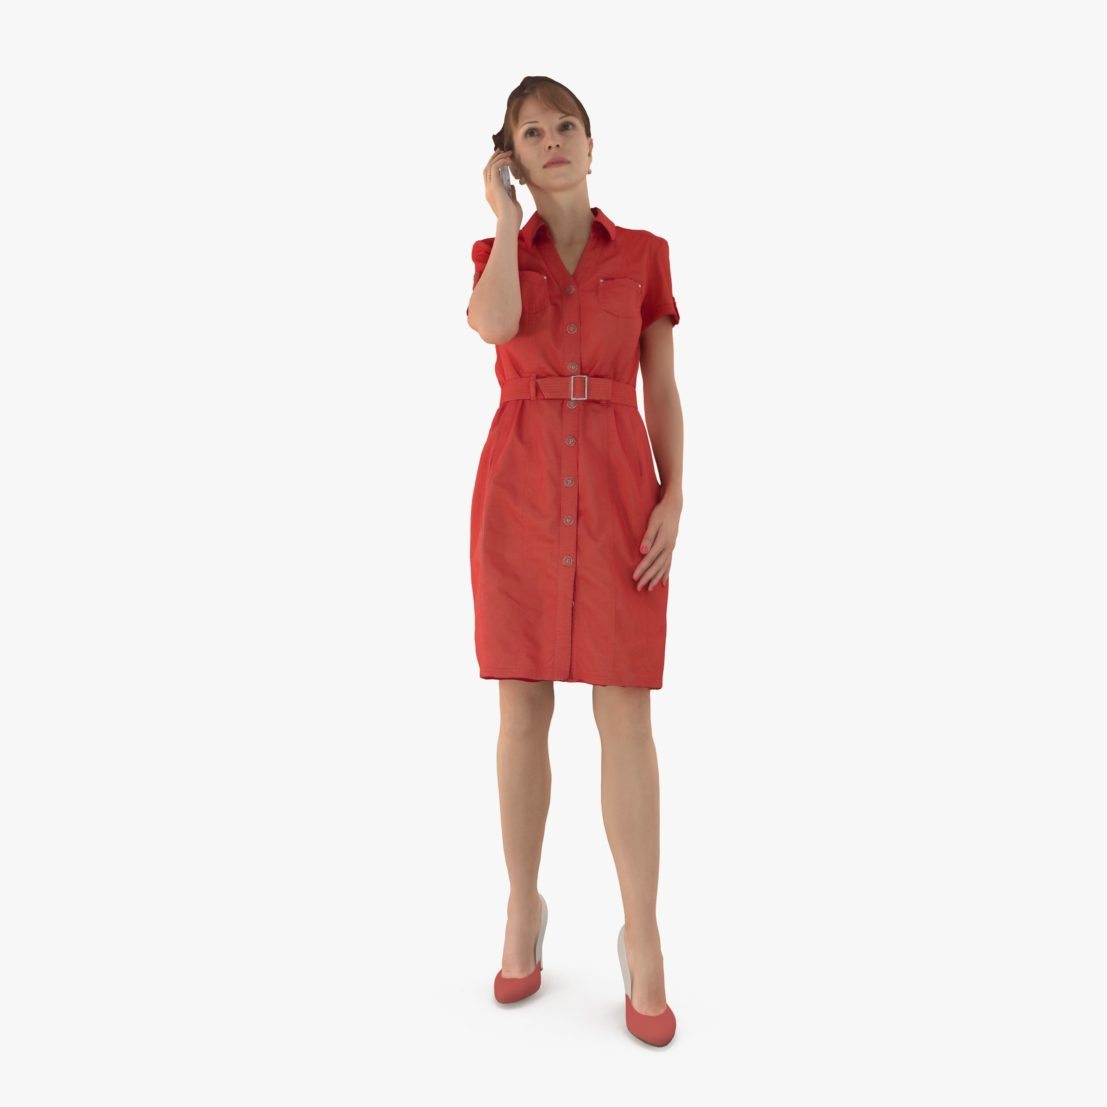 Lady in Red Dress 3D Model | 3DTree Scanning Studio